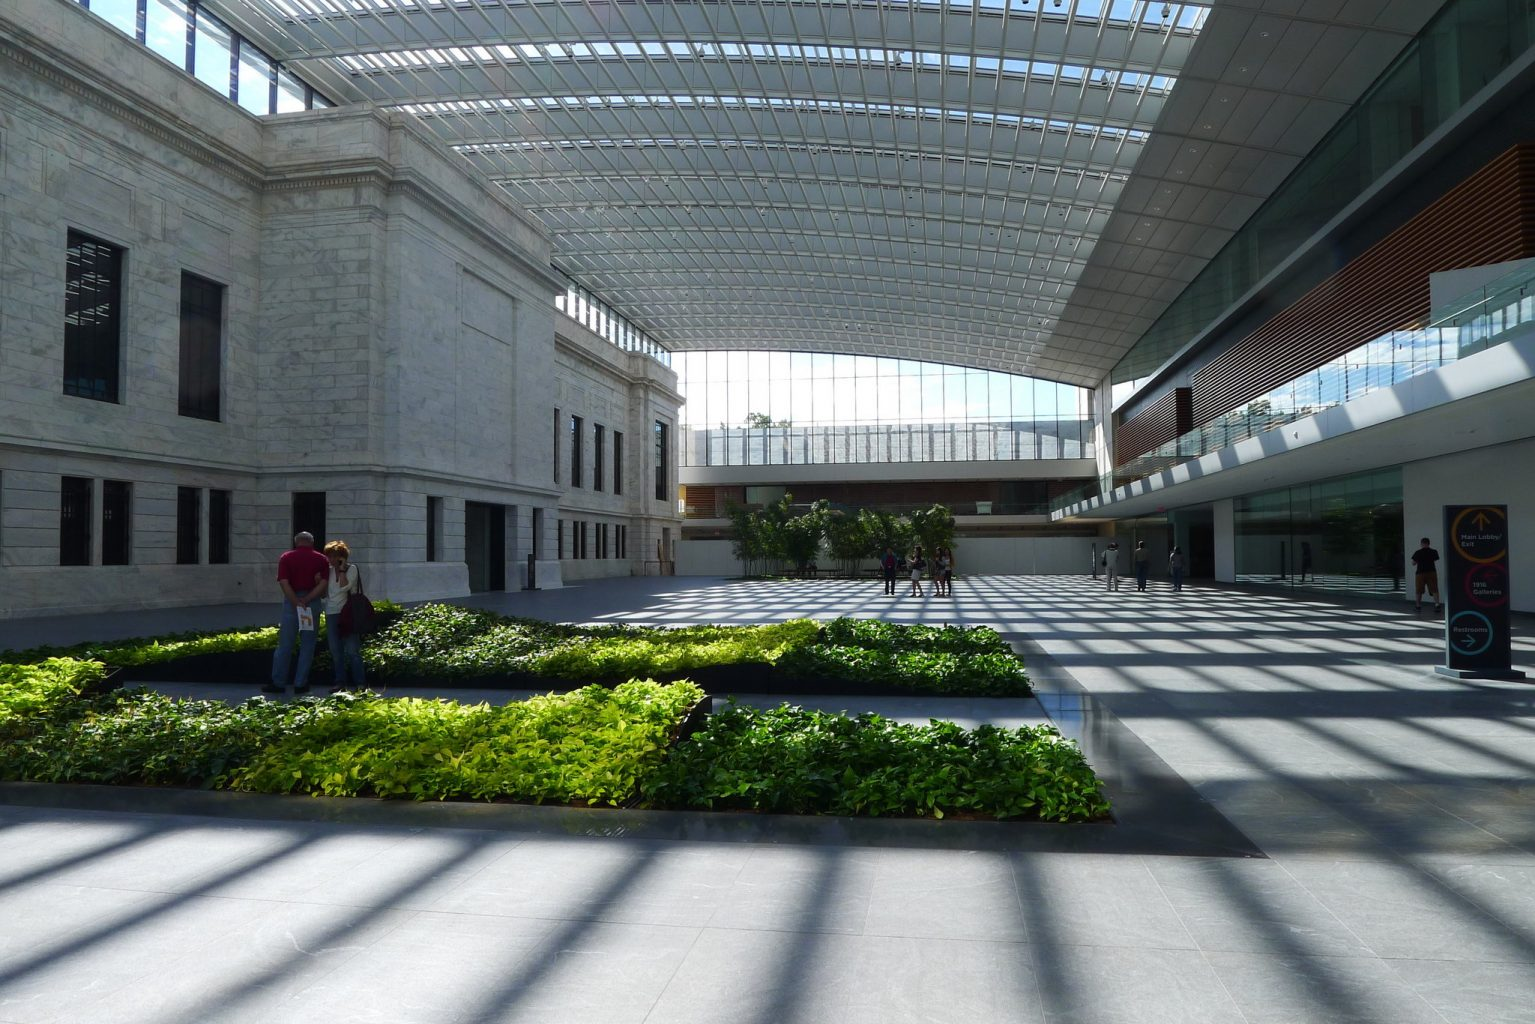 Cleveland's Museum of Art